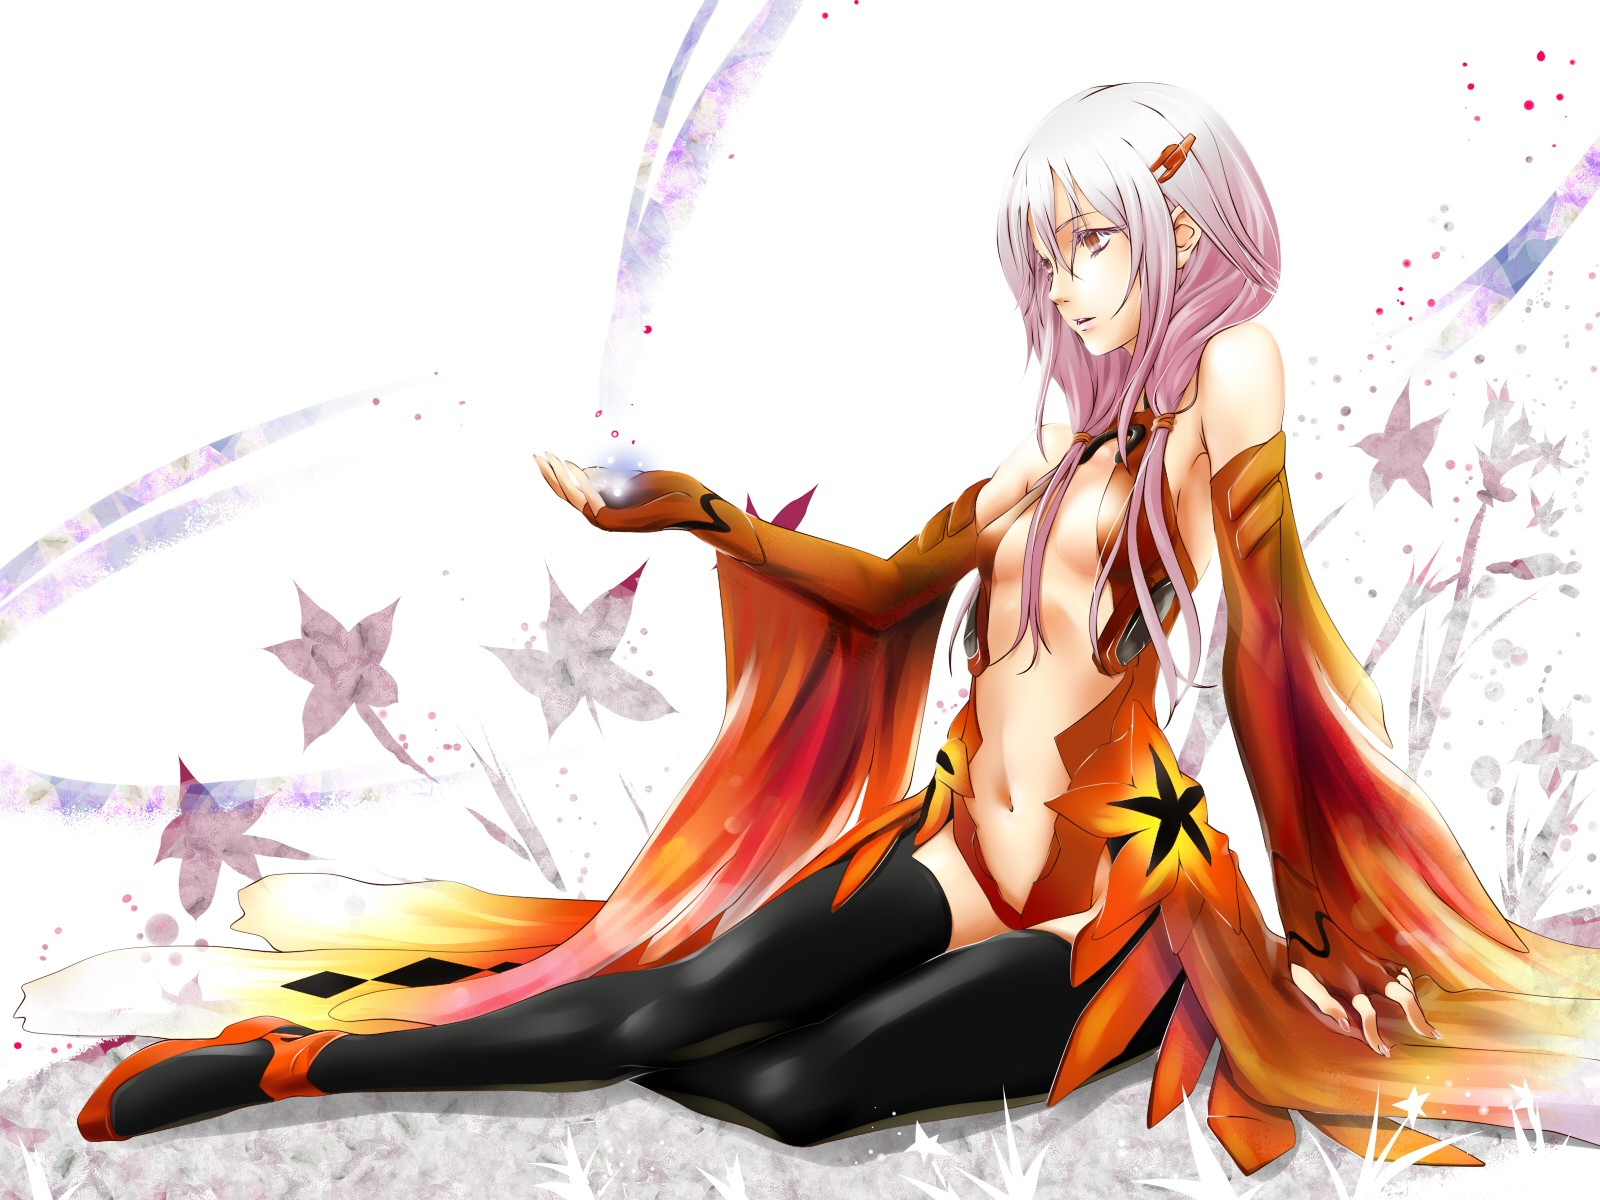 Guilty Crown Wallpaper Inori: Forbidden Forest: Guilty Crown Anime Wallpaper